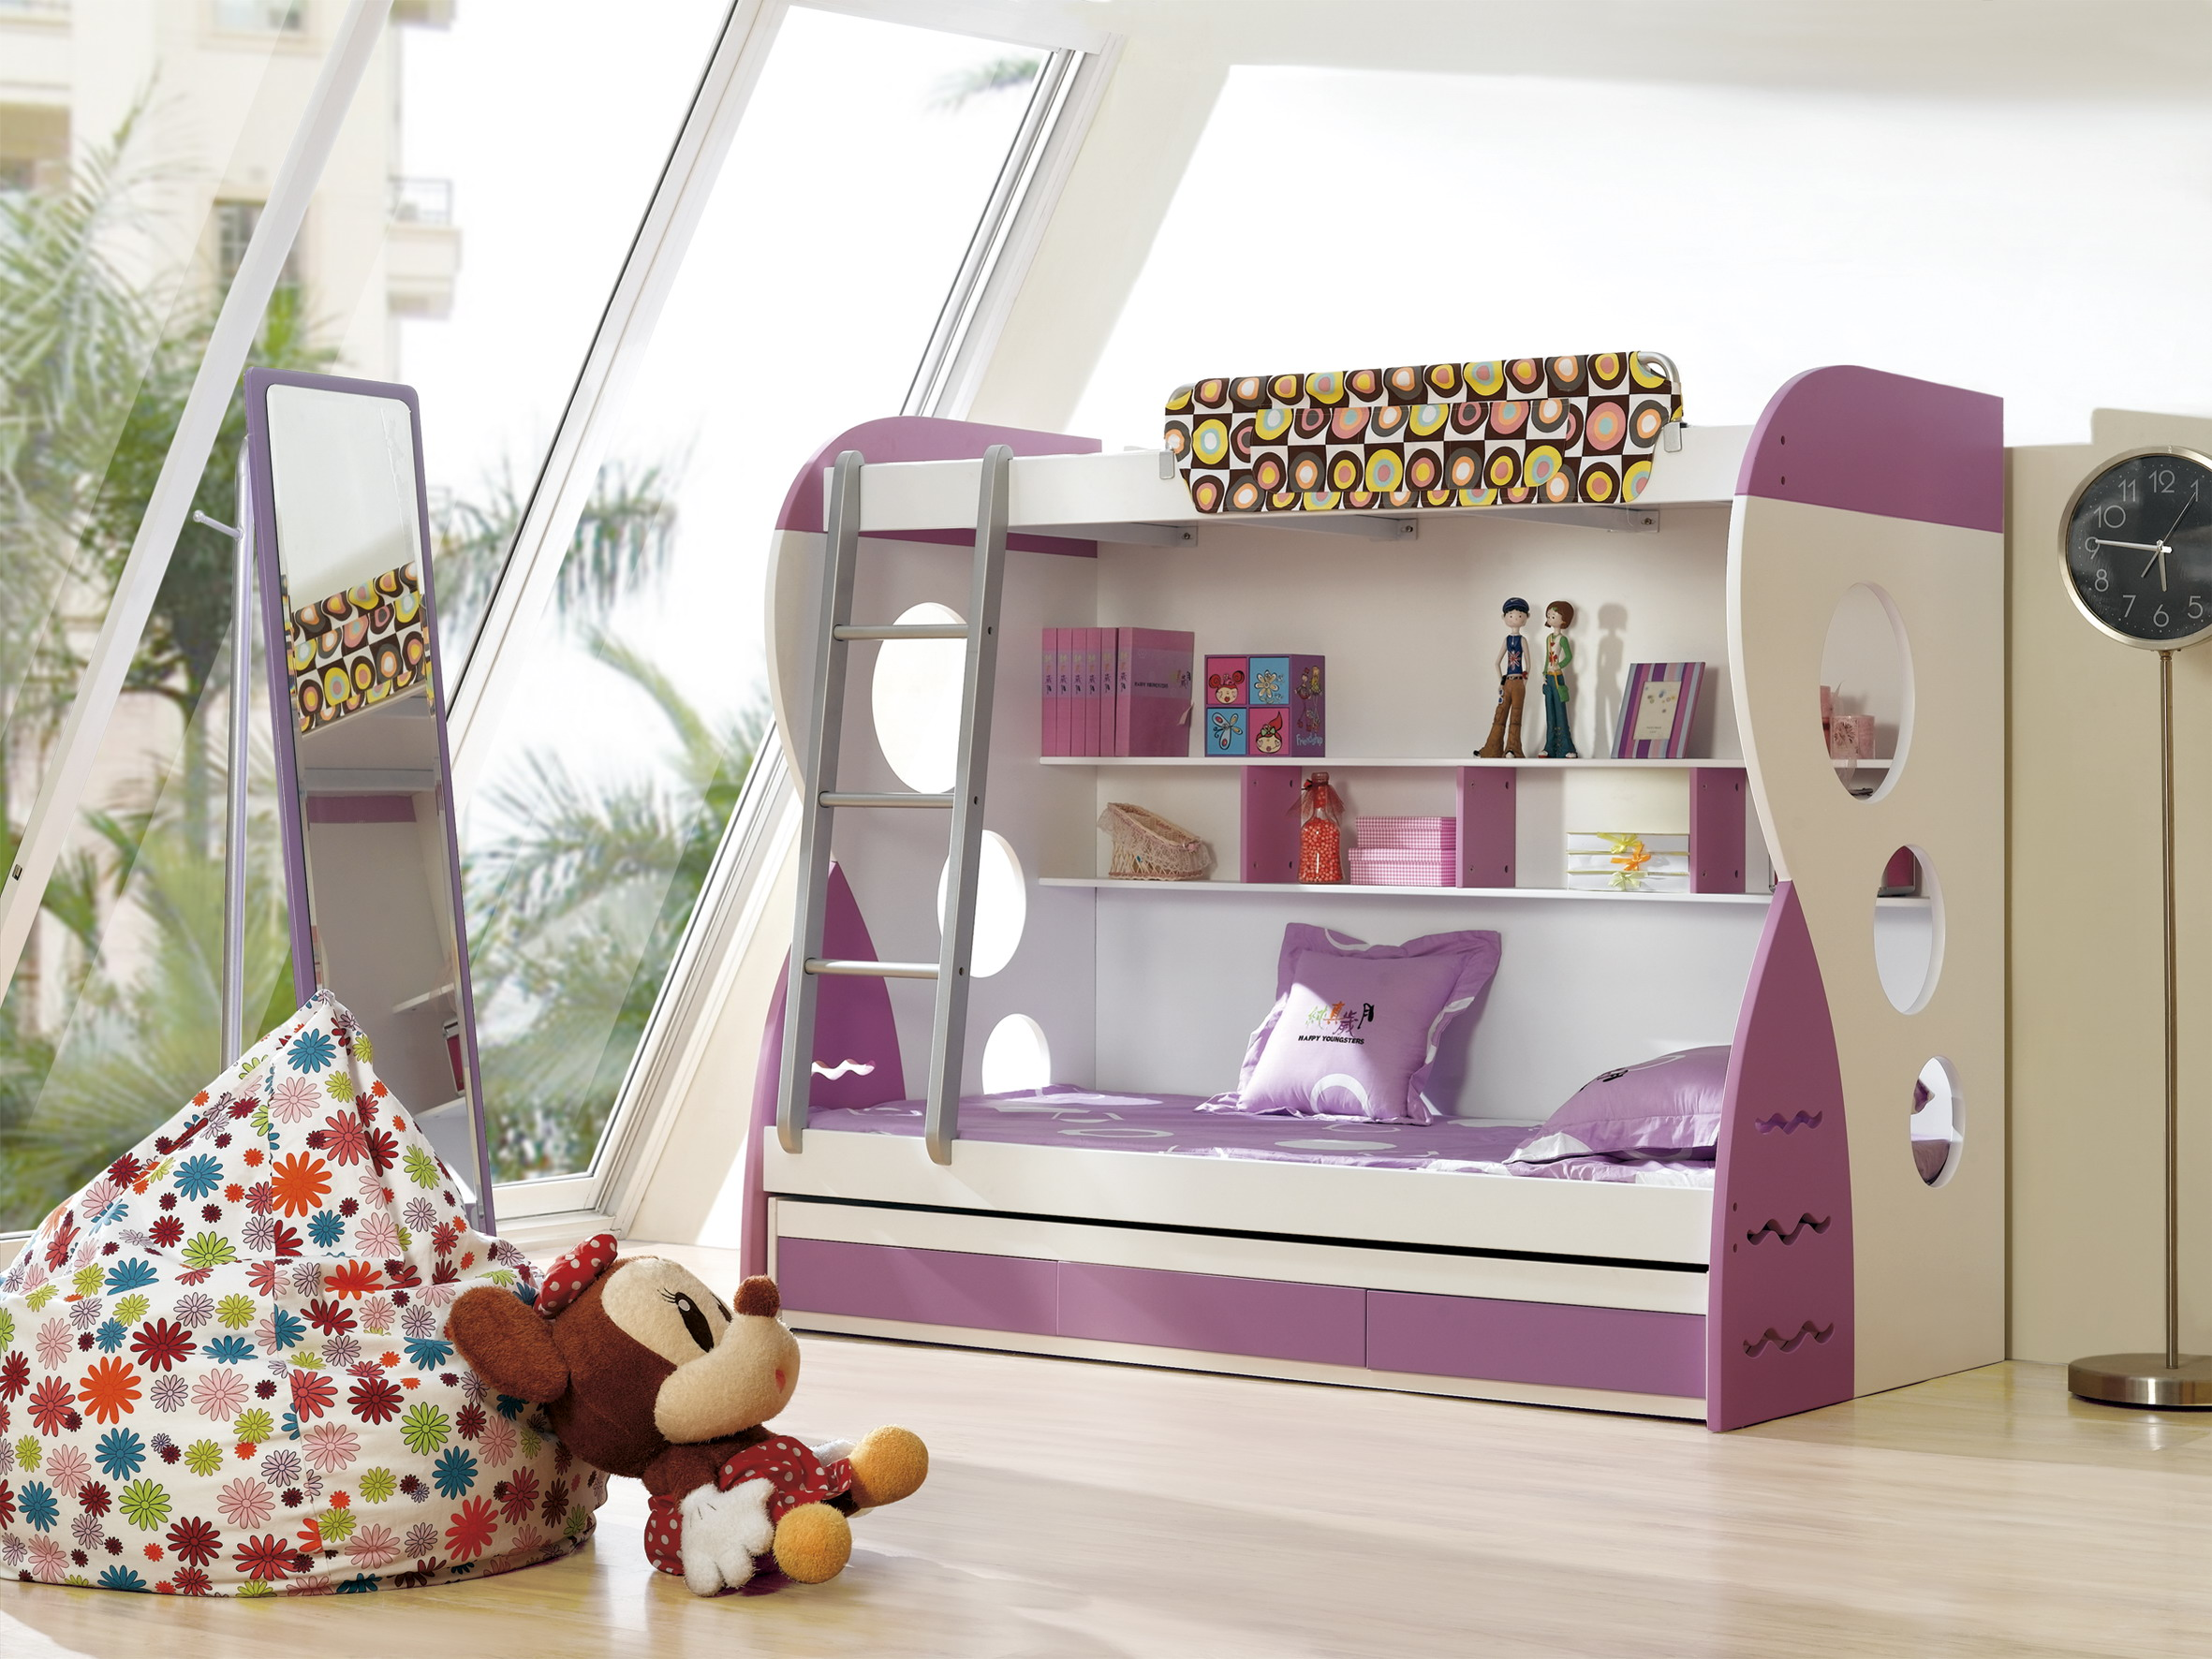 Mattresses Charlotte Nc   Kidsroomstogo   Rooms to Go Outlets in Ga